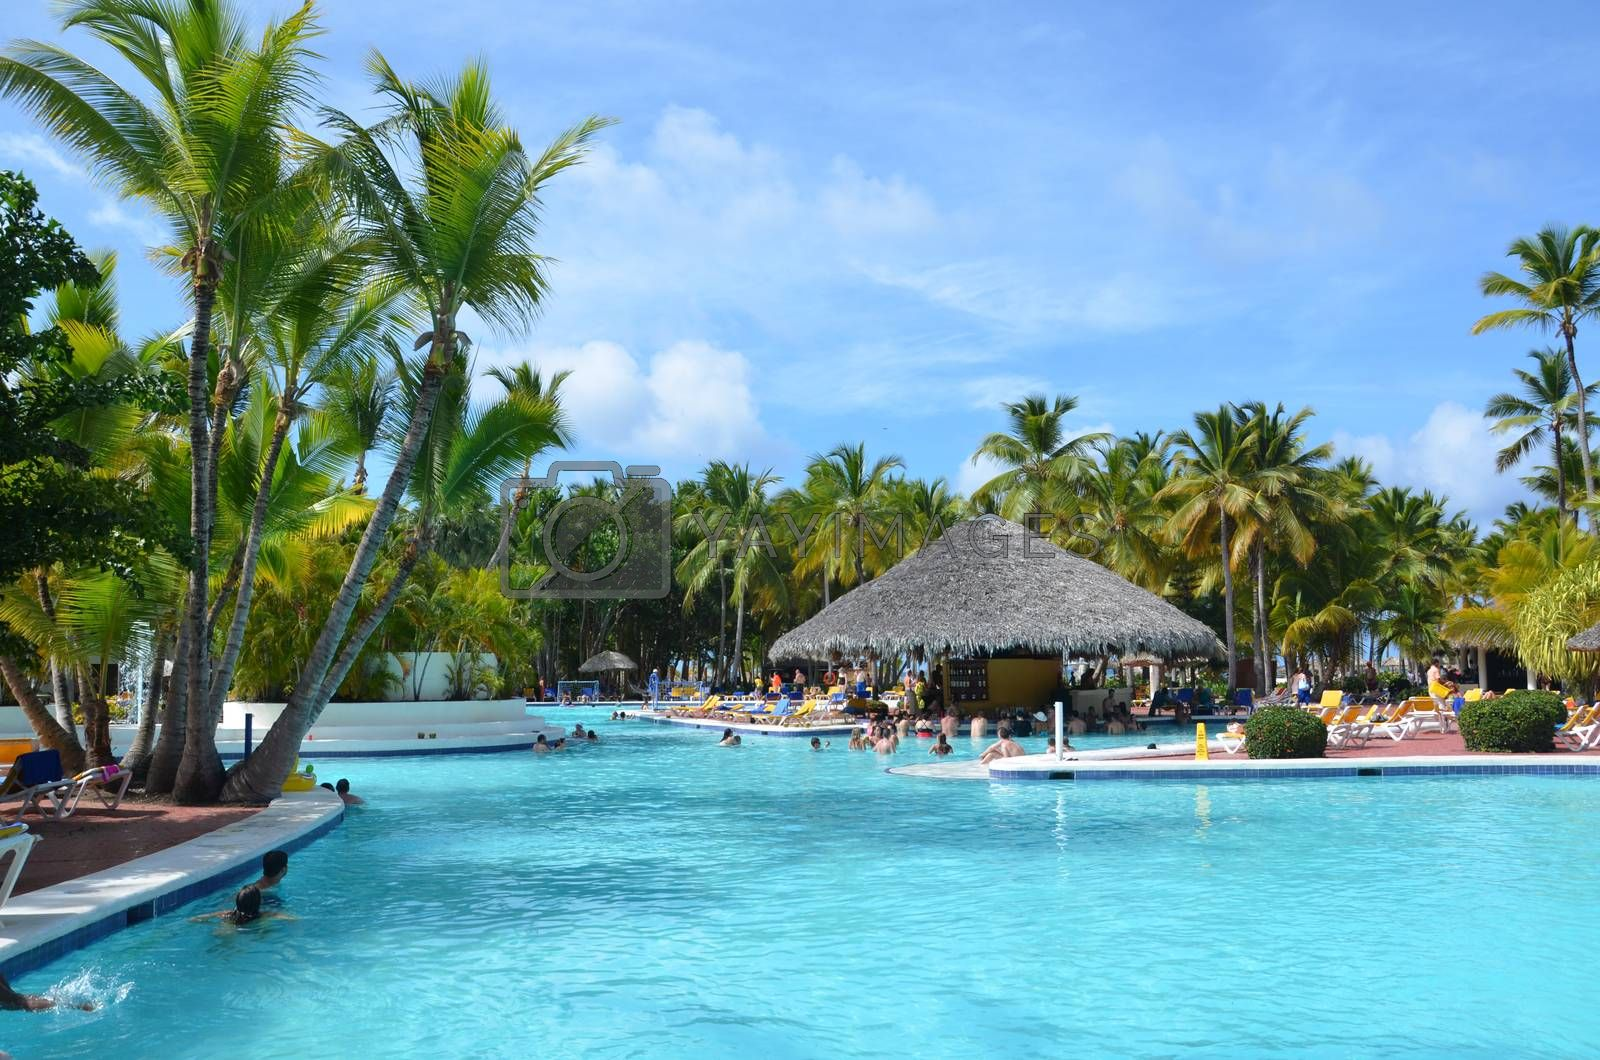 Beautiful luxury swimming pool at a tropical resort, People relax at the hotel